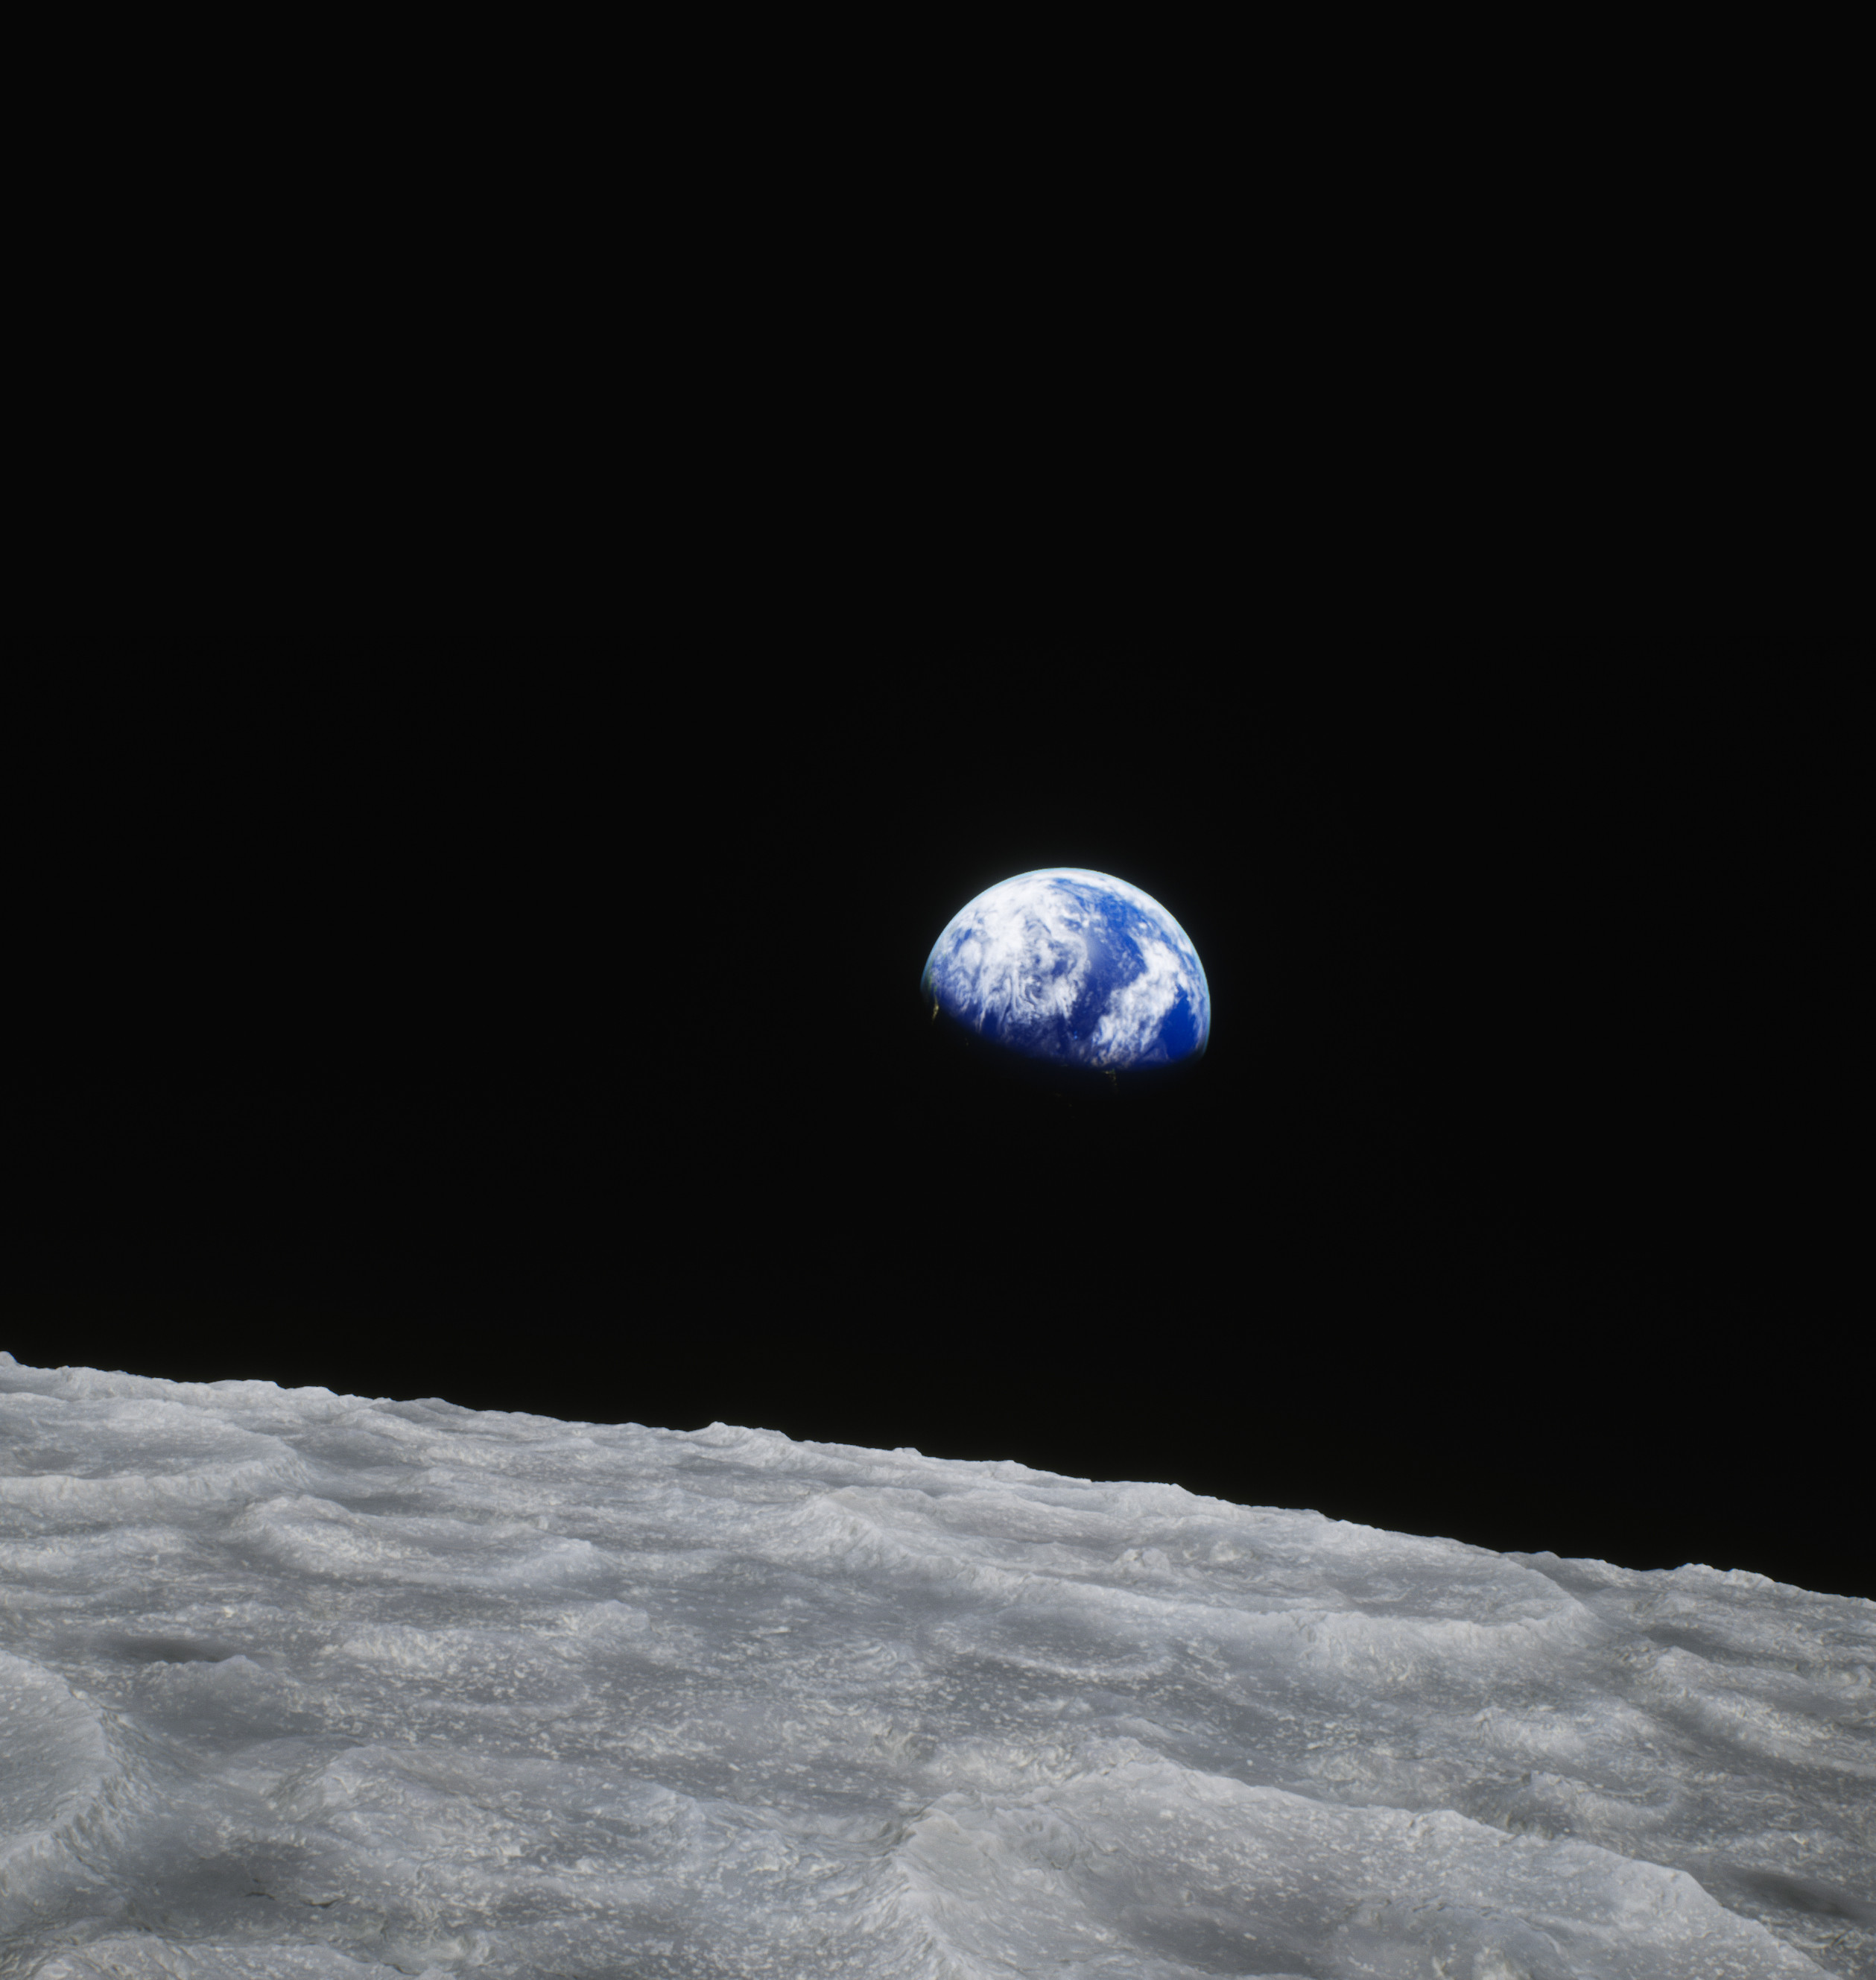 """""""Earthrise,"""" original photo taken by astronaut William Anders on the Apollo 8 mission. Original photo - https://images.nasa.gov/details-as08-14-2383.html"""